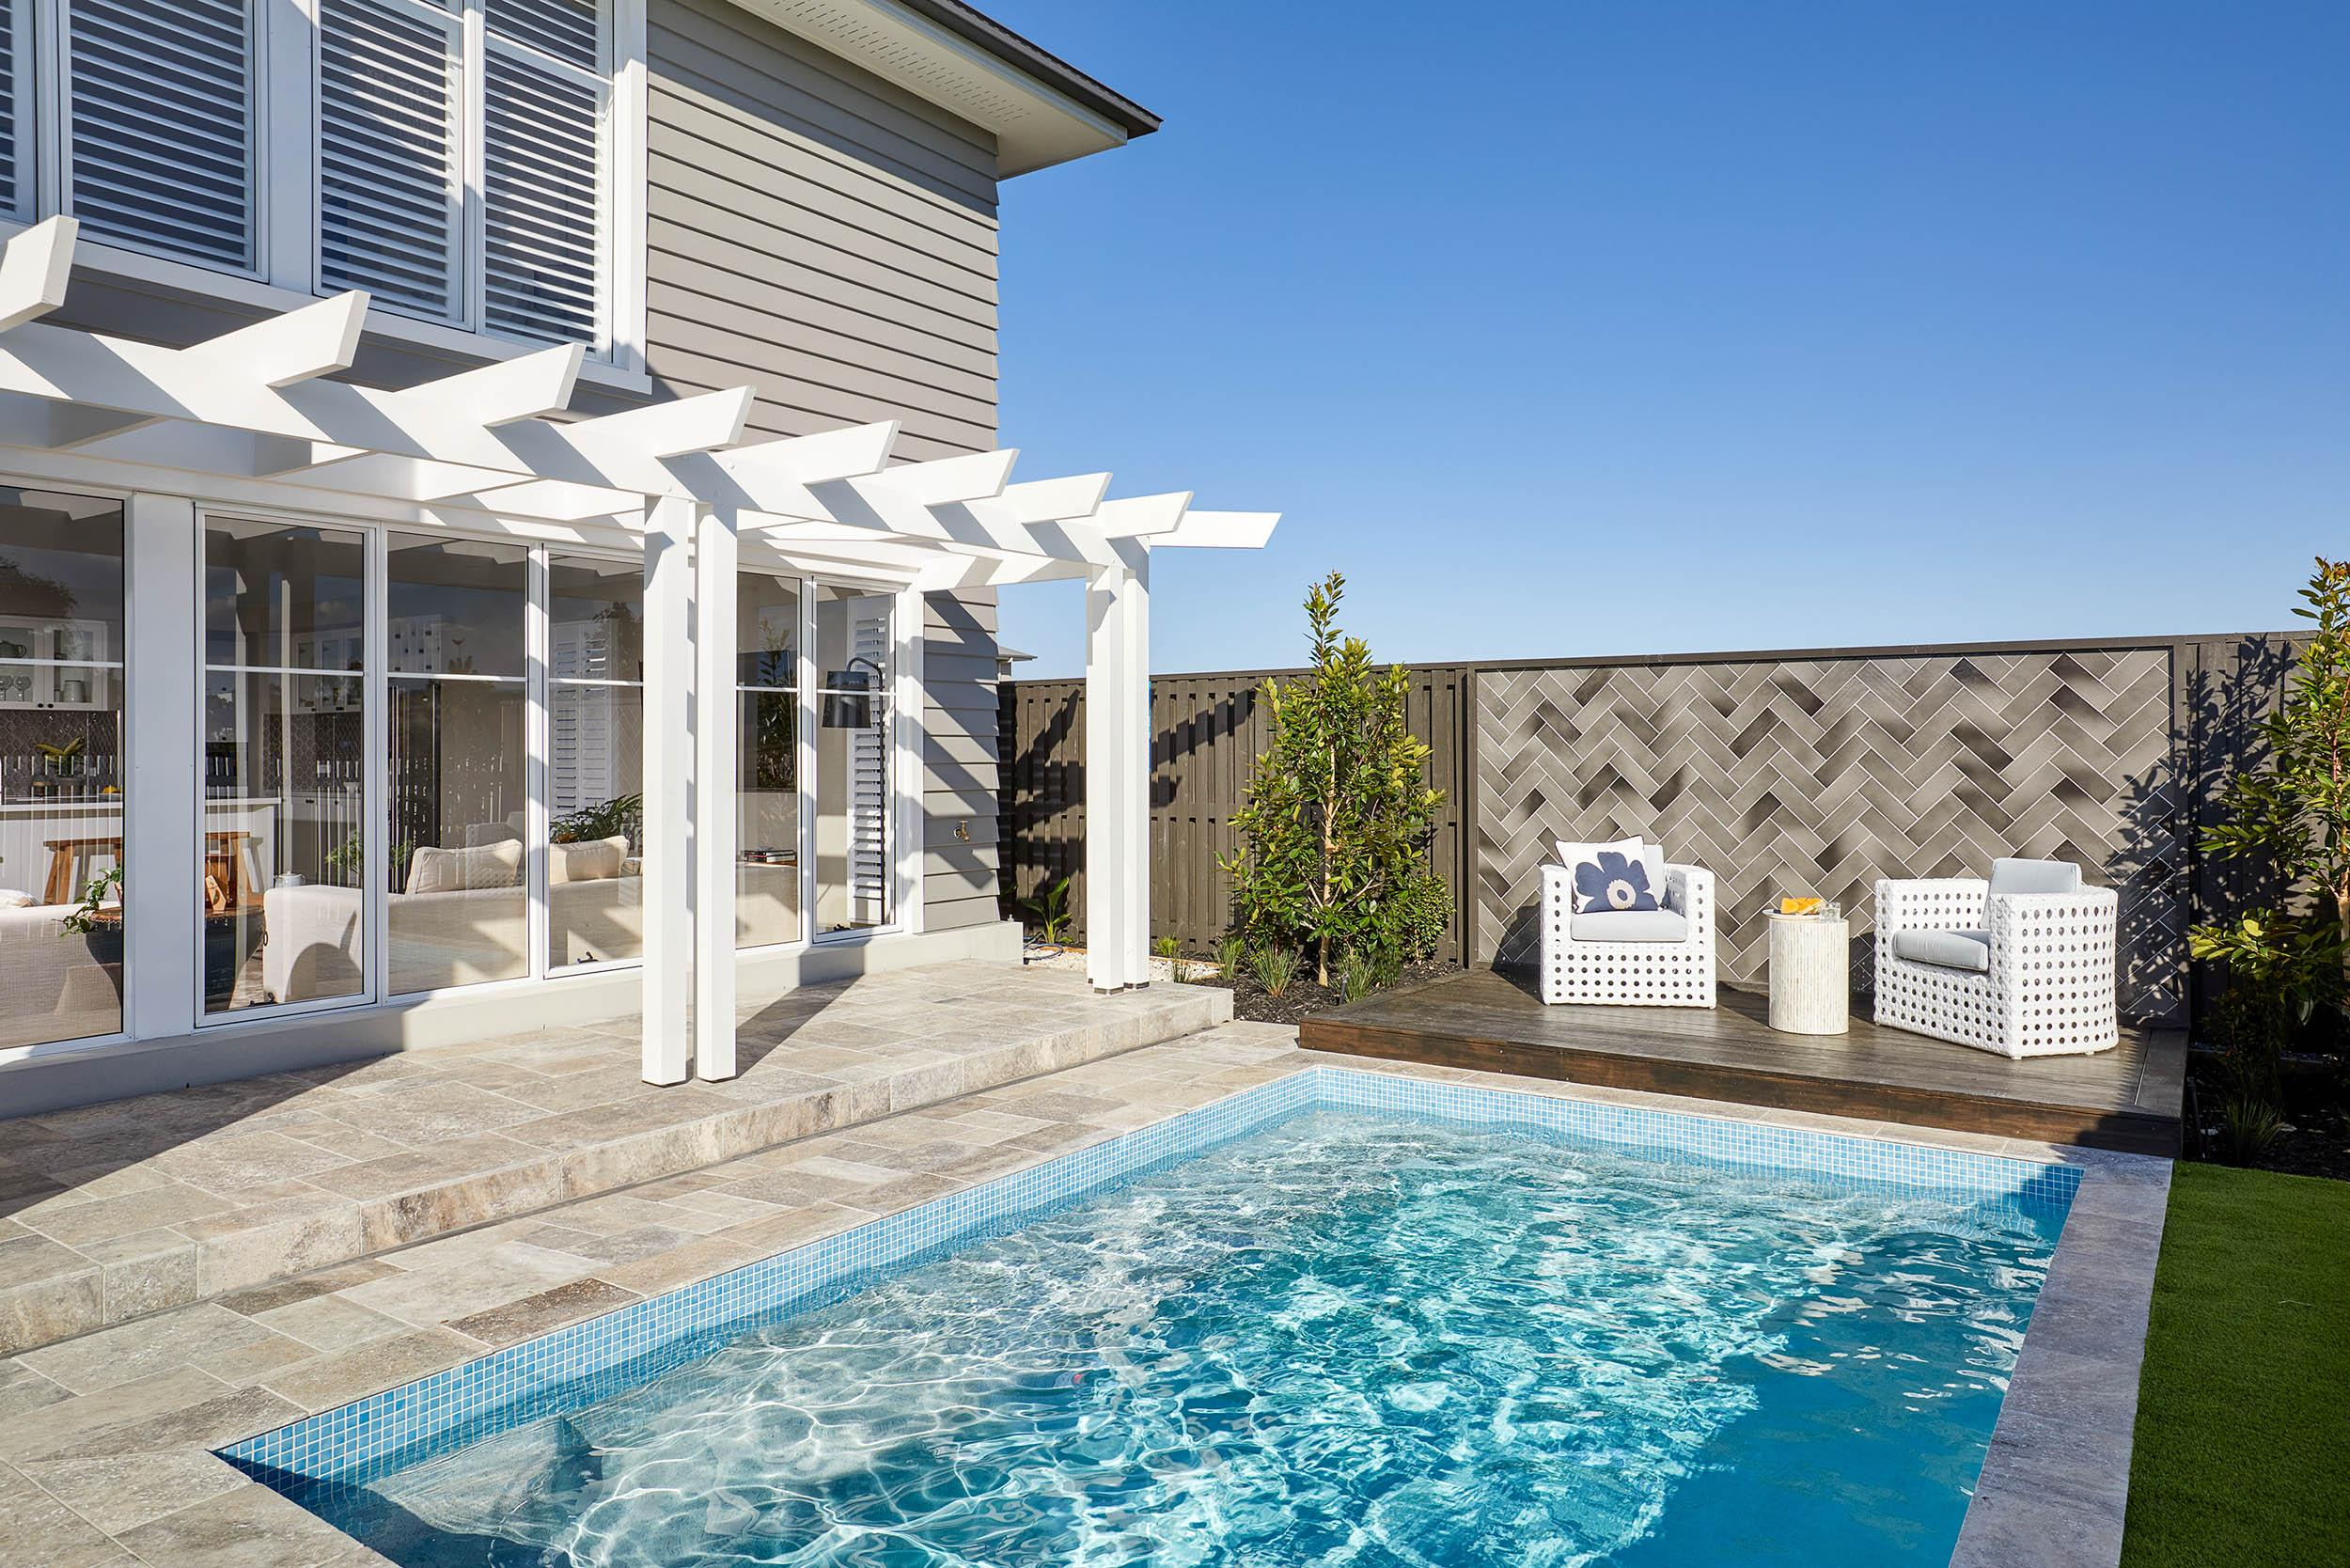 How to clean and tidy outdoor furniture and cushions